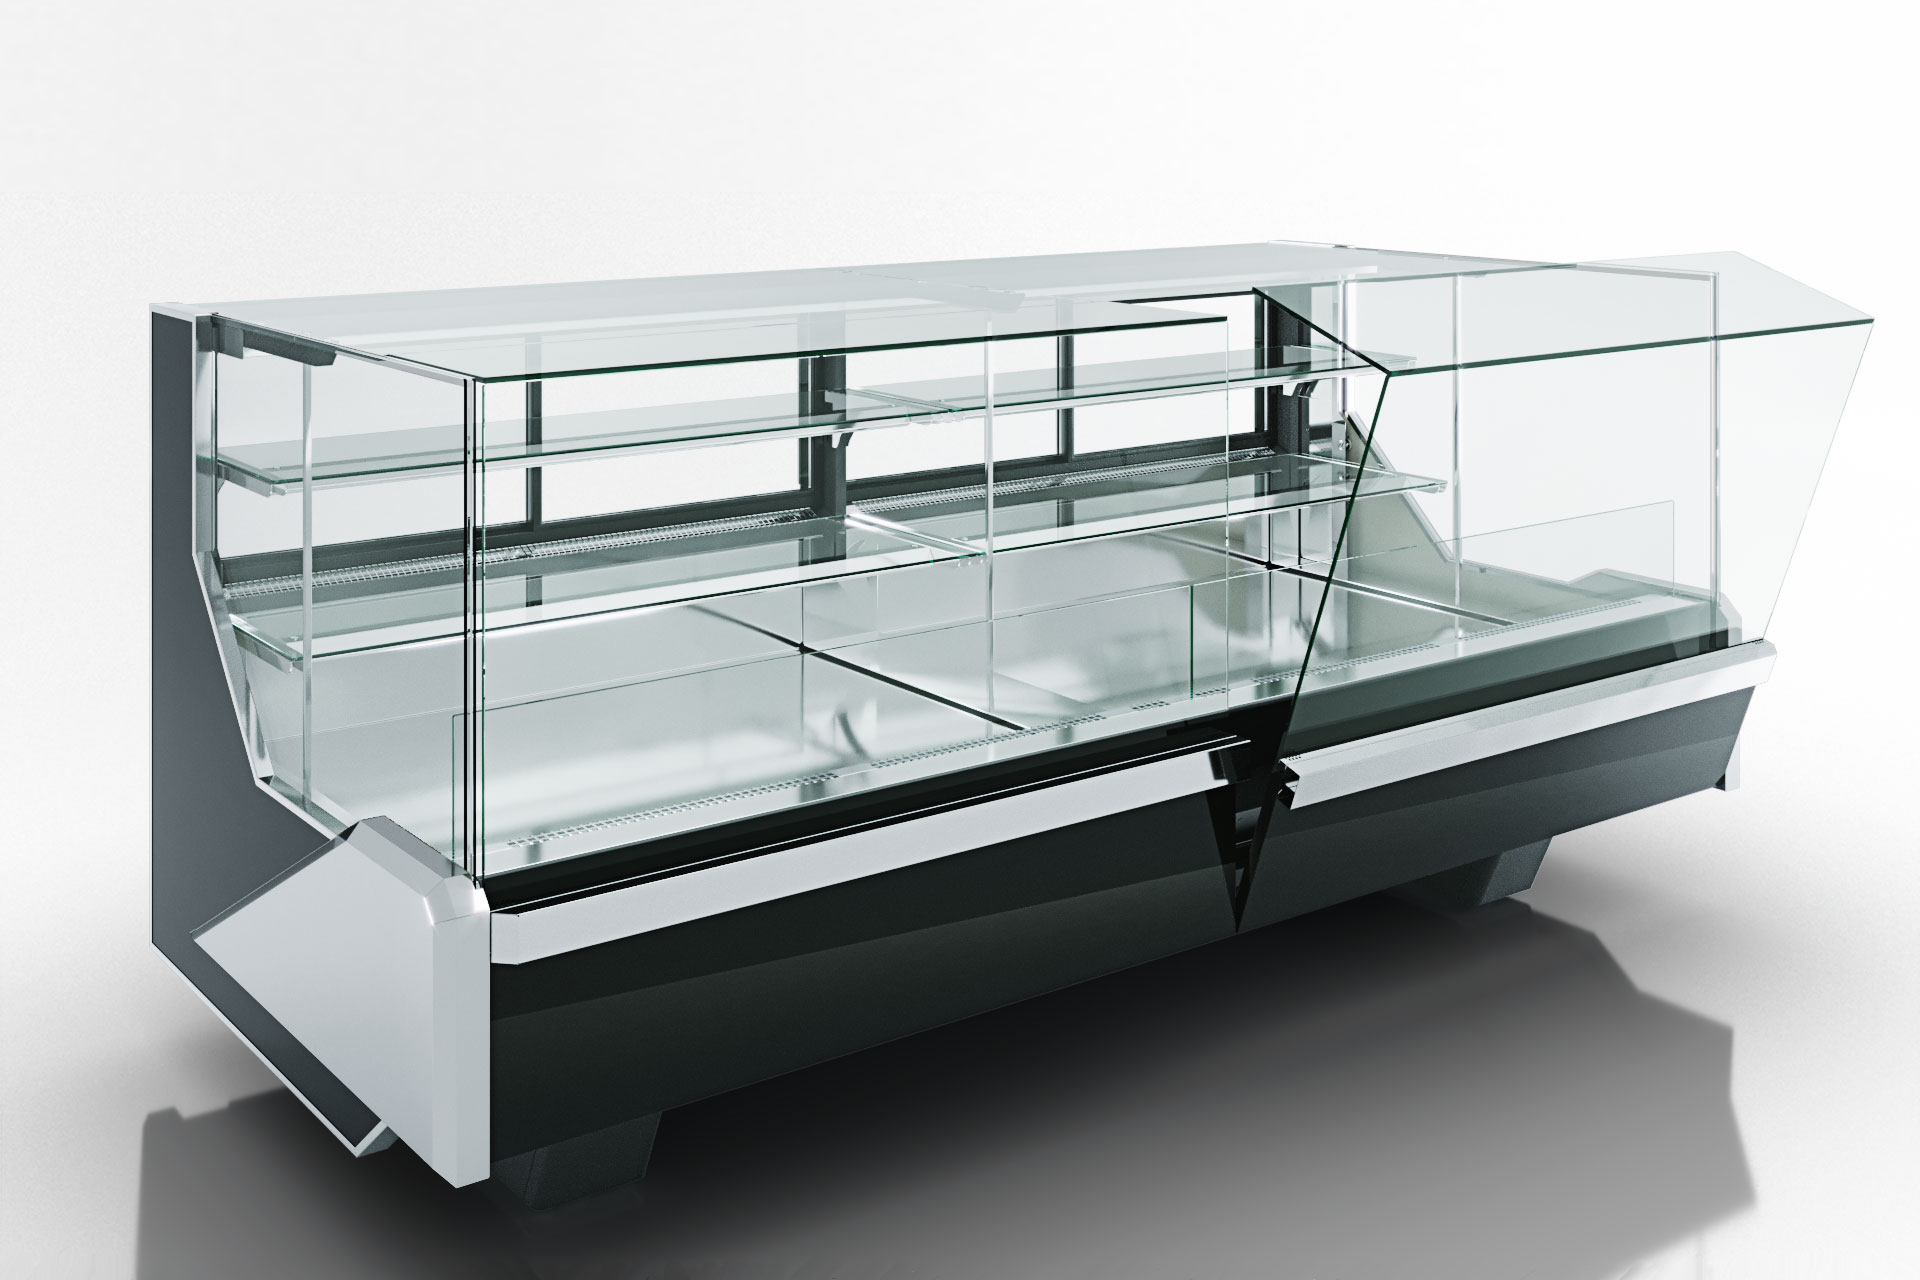 Counter Missouri Enigma MC 125 patisserie OS 120-DLM